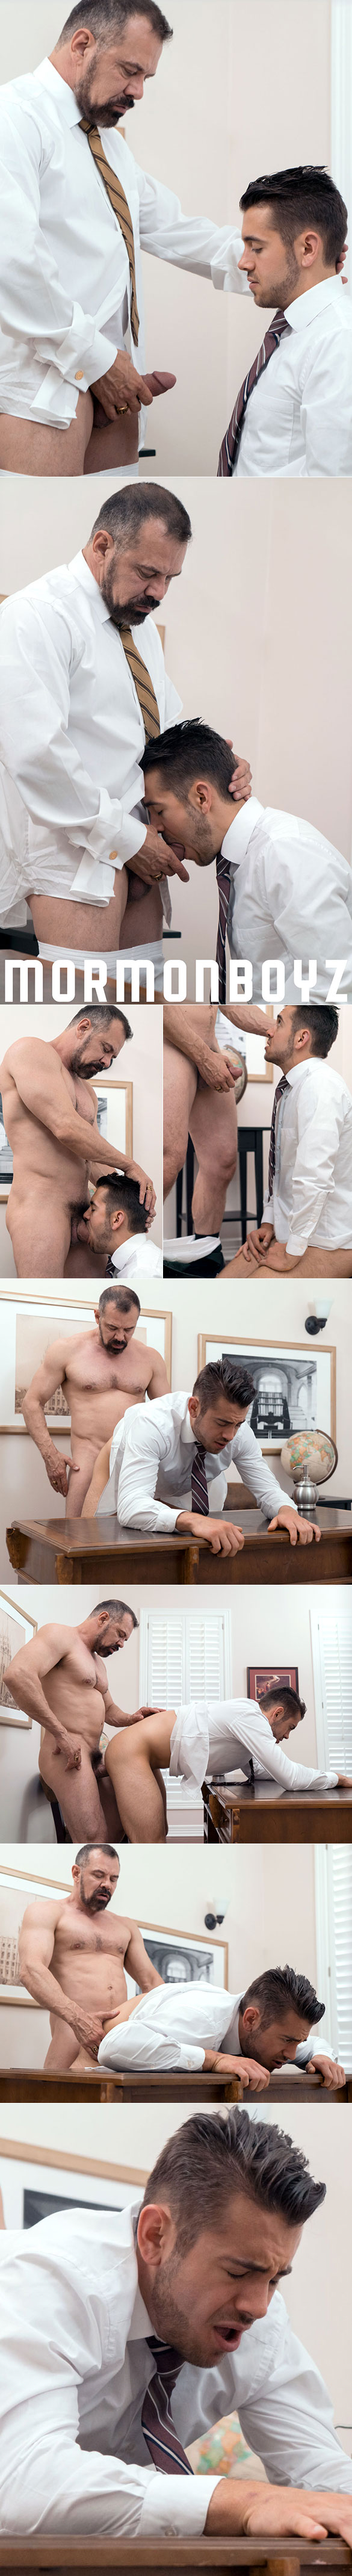 "MormonBoyz: President Ballard fucks Brother Calhoun raw in ""The Calling"""